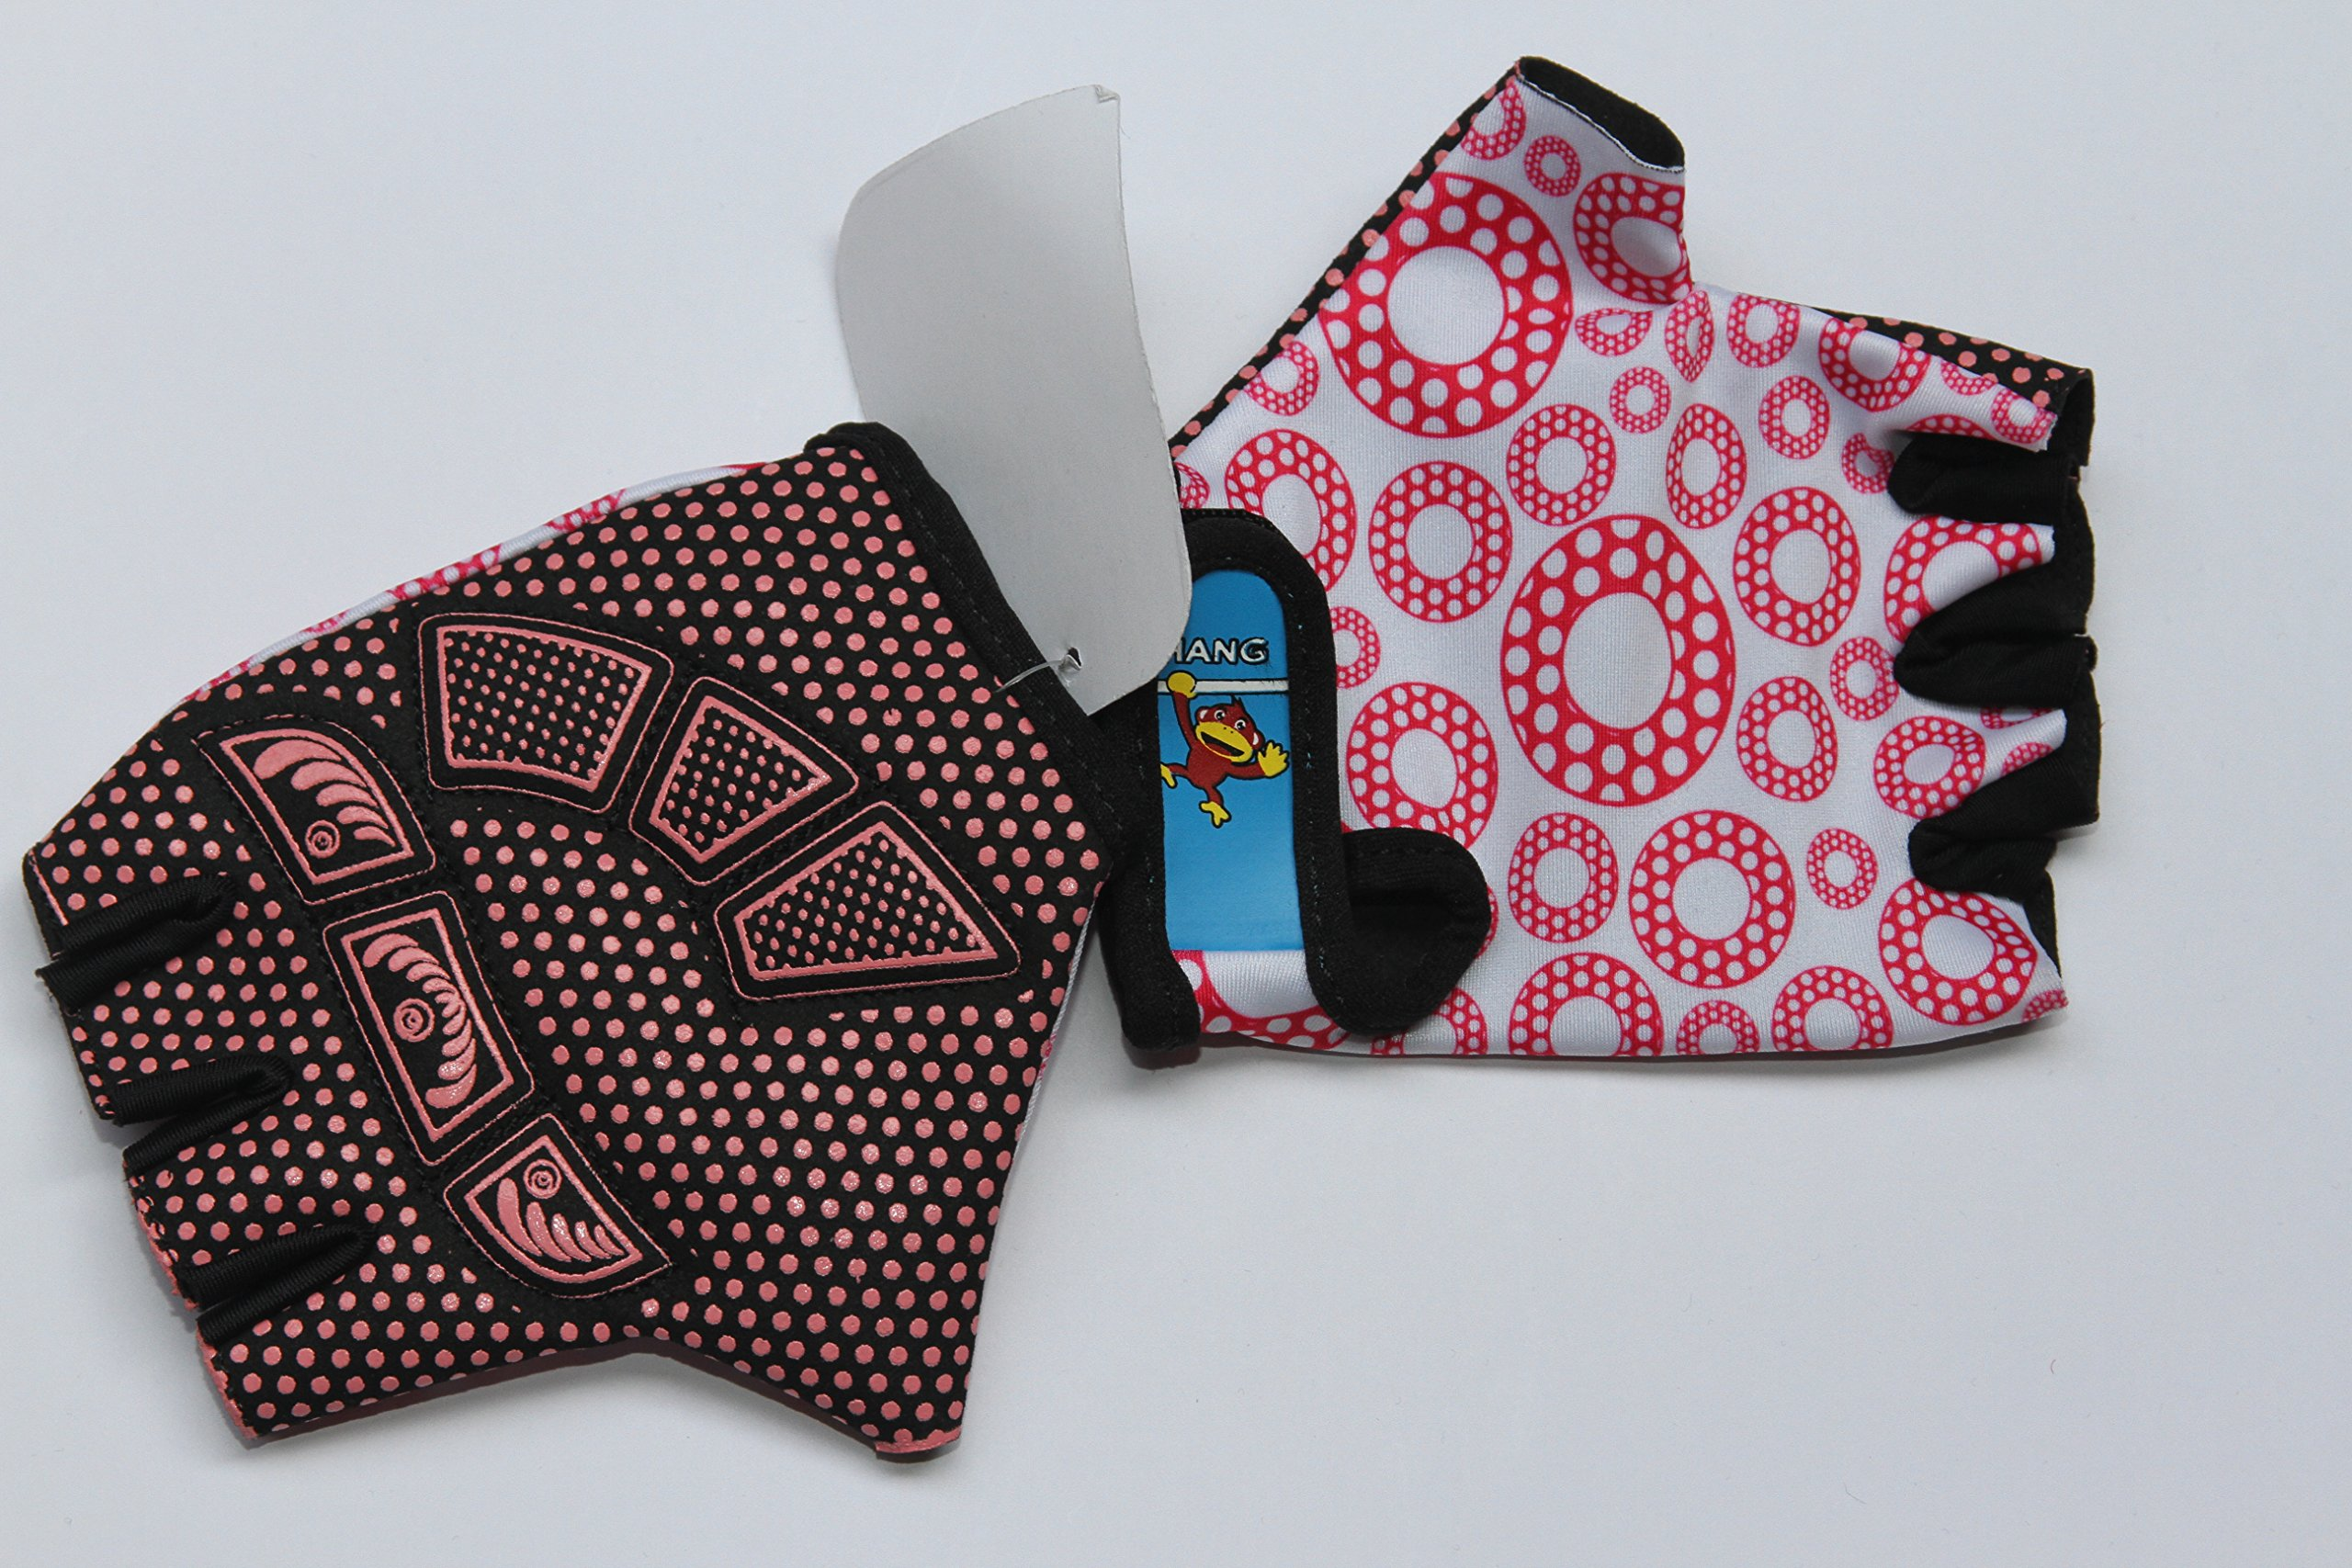 HANG Monkey Bars Gloves (Kids 5 and 6) with Grip Control by HANG (Image #3)